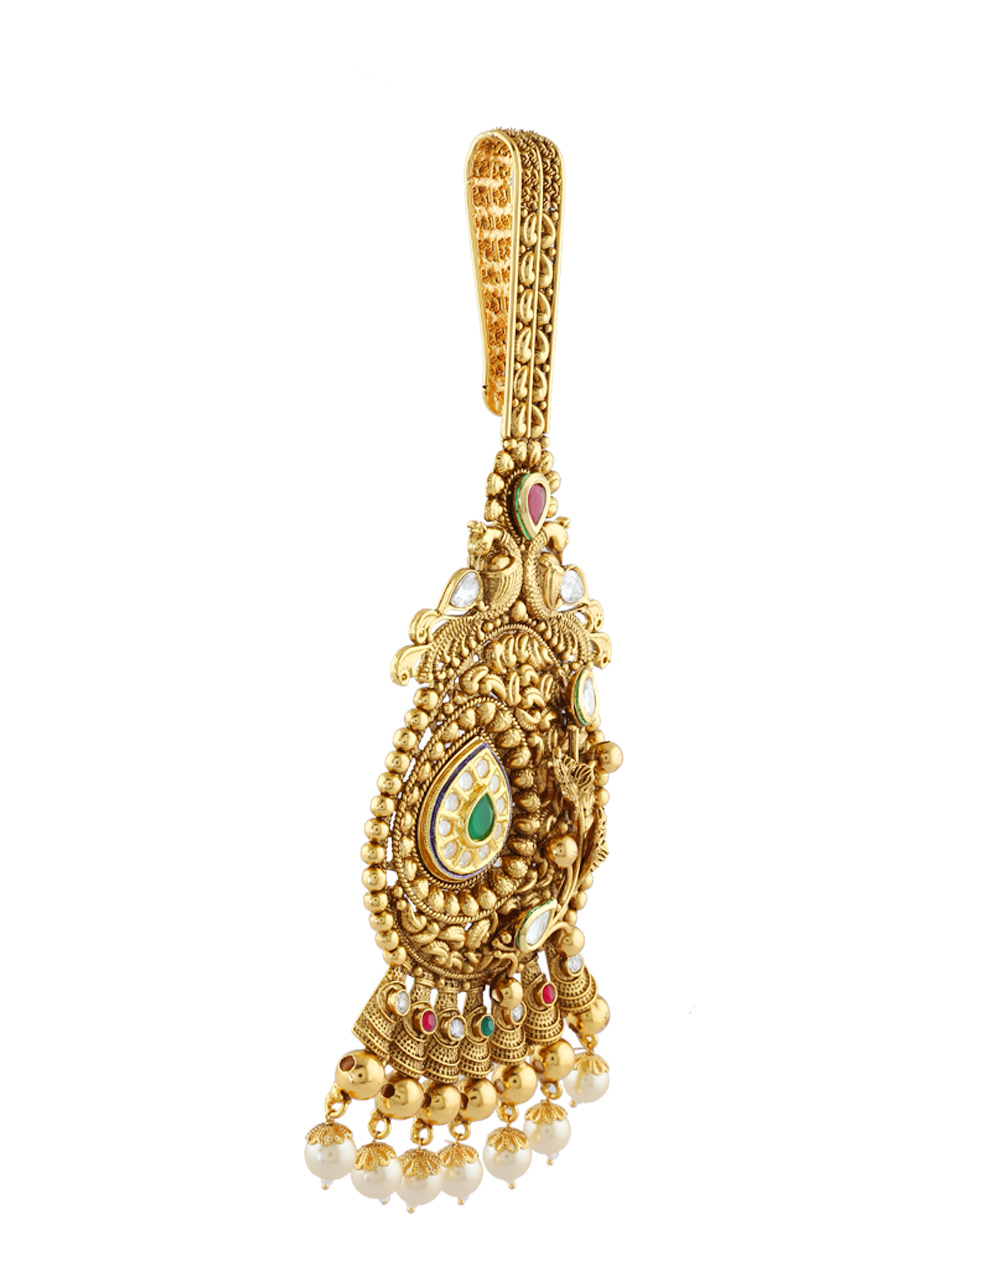 Antique Gold Finish Pearls Styled Fancy Challa